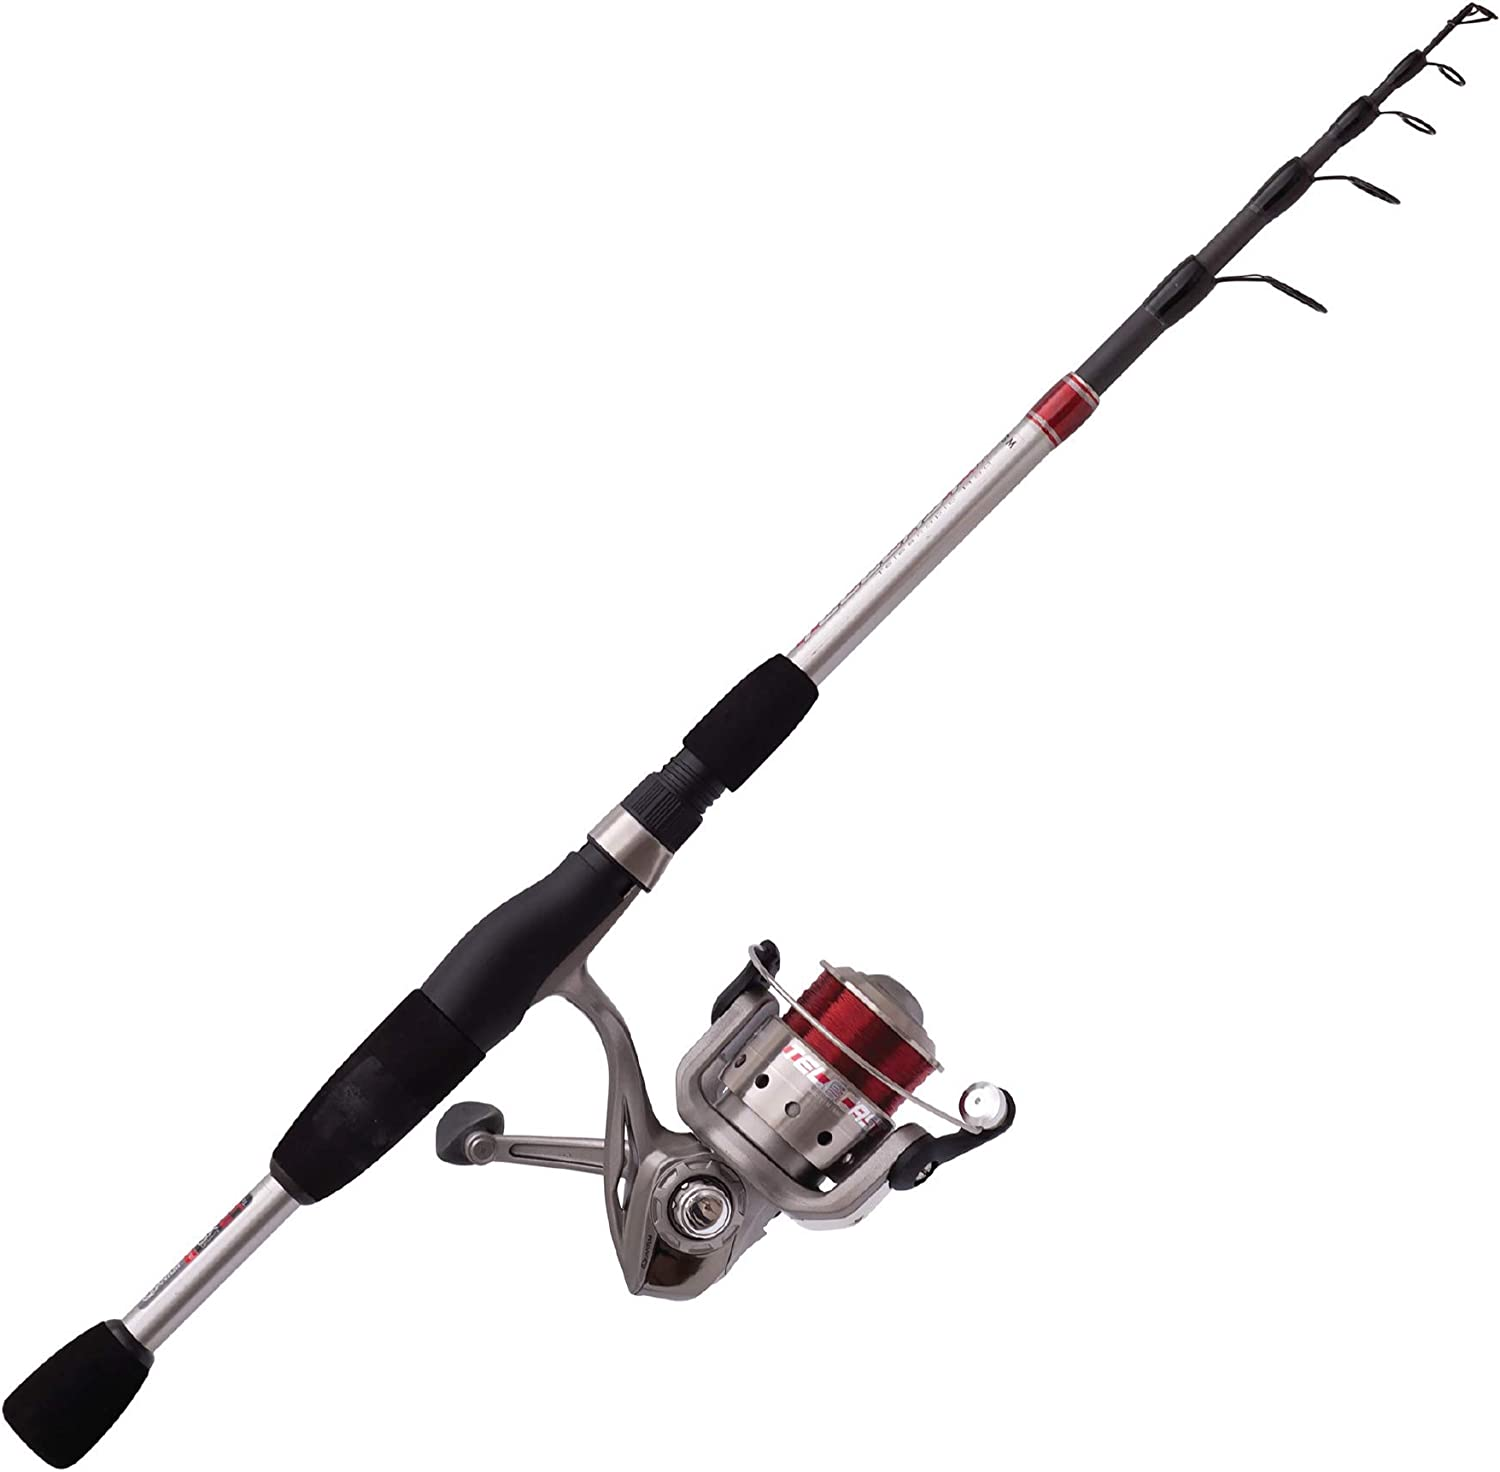 Quantum Telescopic Fishing Rod and Spinning Reel Combo, Durable Telecast Rod, Split-Grip EVA Foam Handle, Continuous Anti-Reverse Fishing Reel with Anodized Aluminum Spool